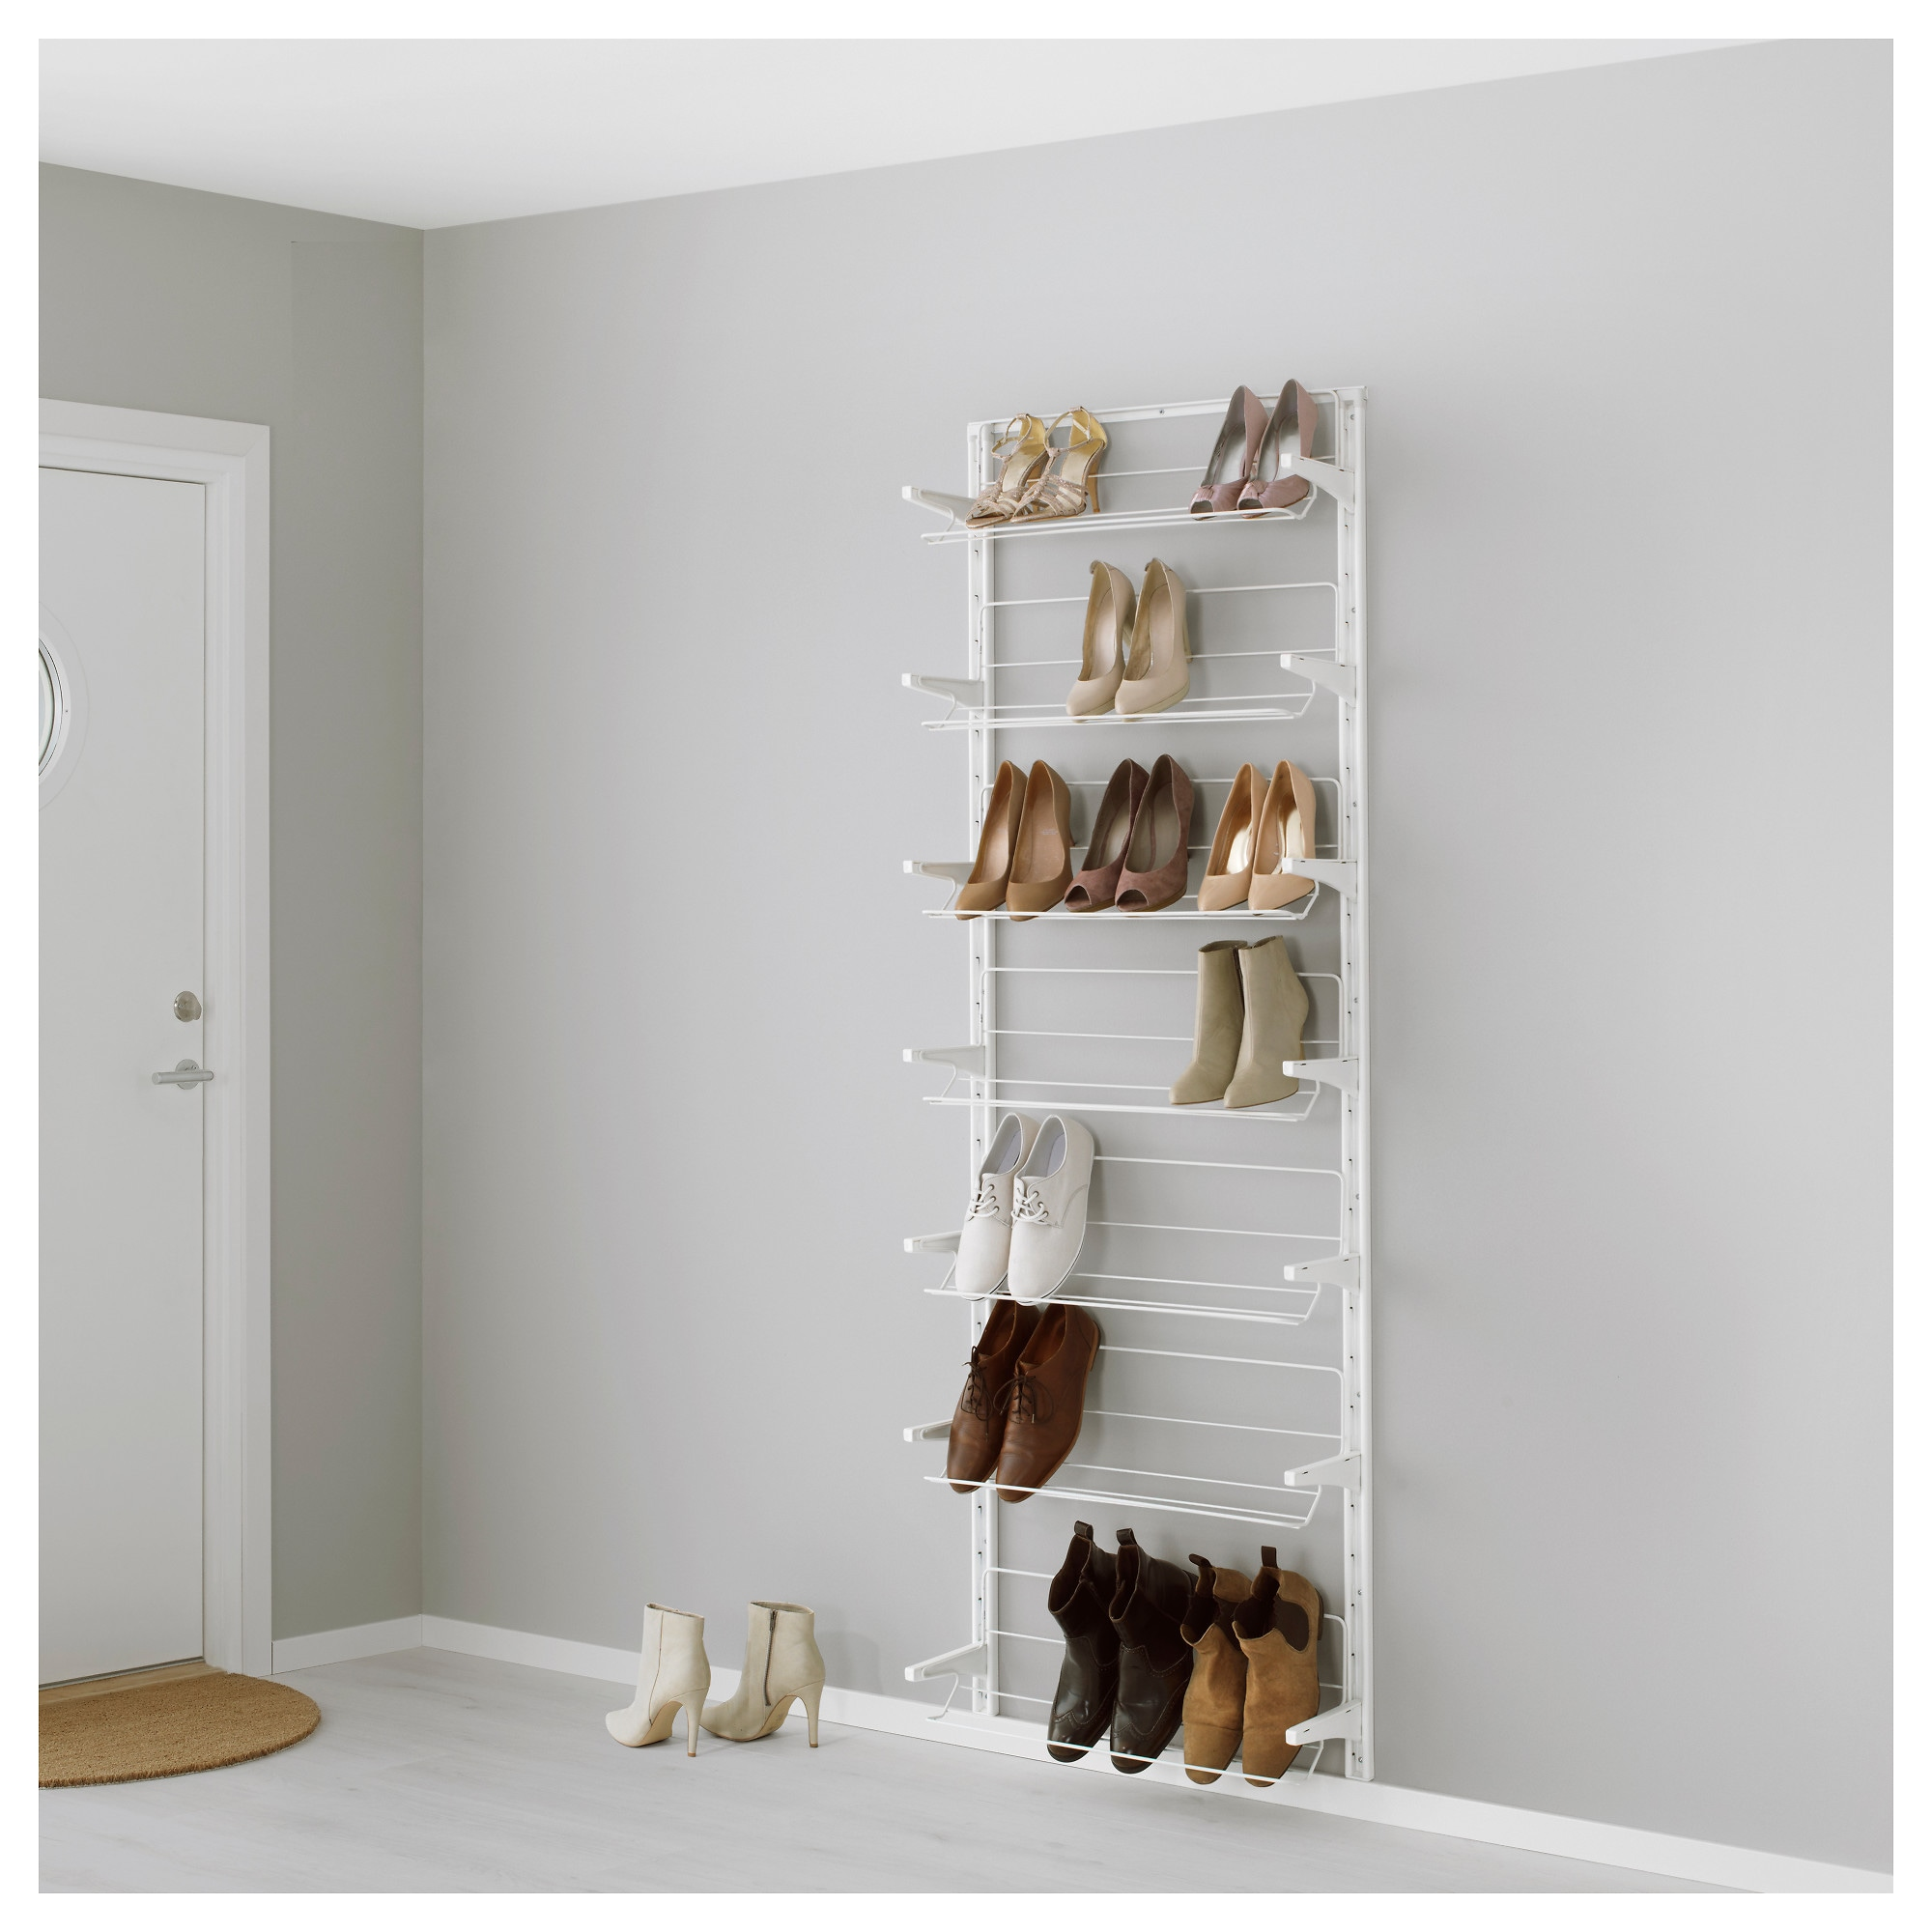 algot wall uprightshoe organizer white width 26 depth 8 1 algot white wall mounted storage solution